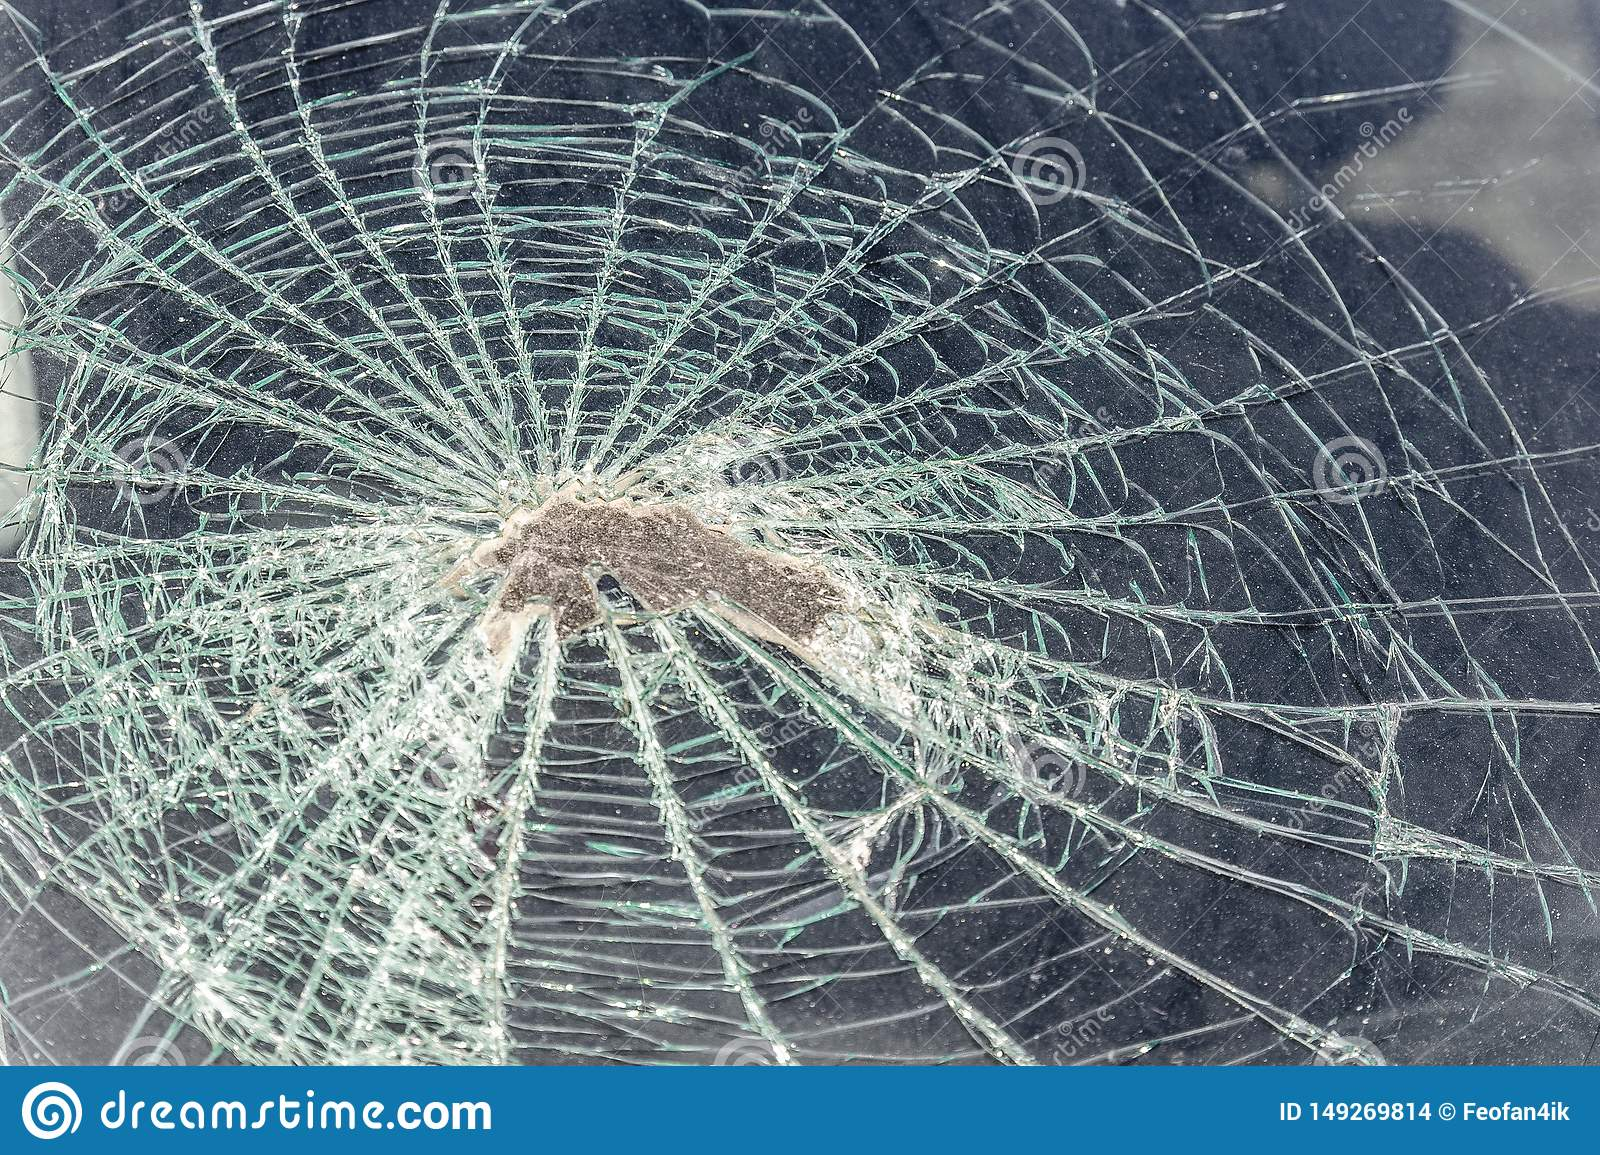 trace in the windshield from the head of the passenger of the car in an accident or collision with an obstacle. broken glass head